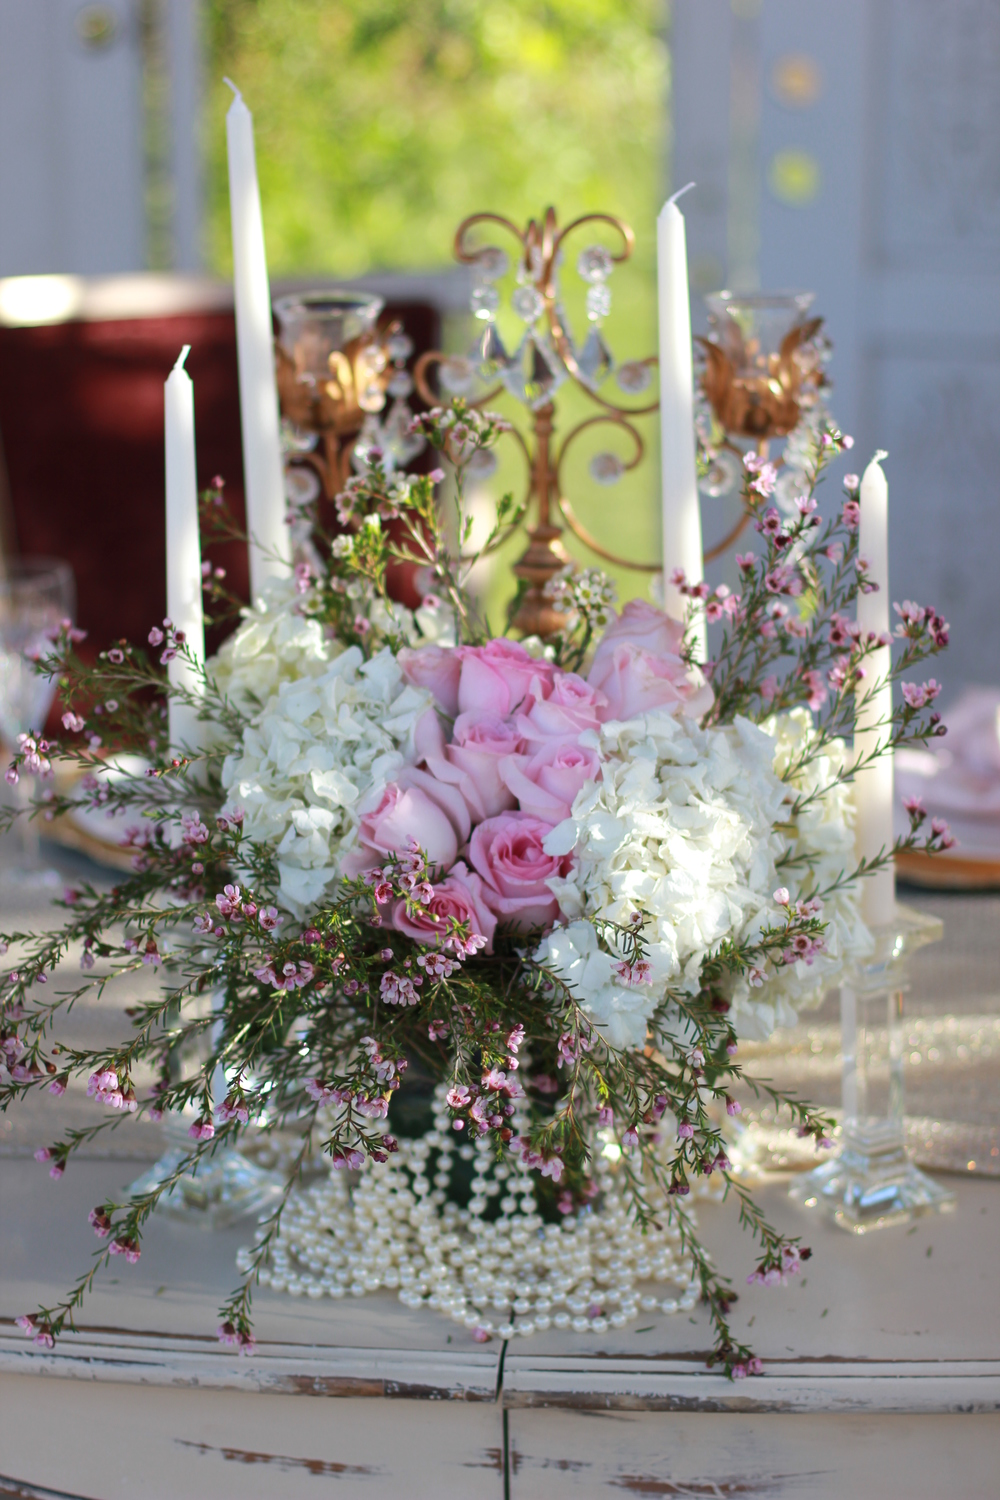 Prim Design Centerpiece